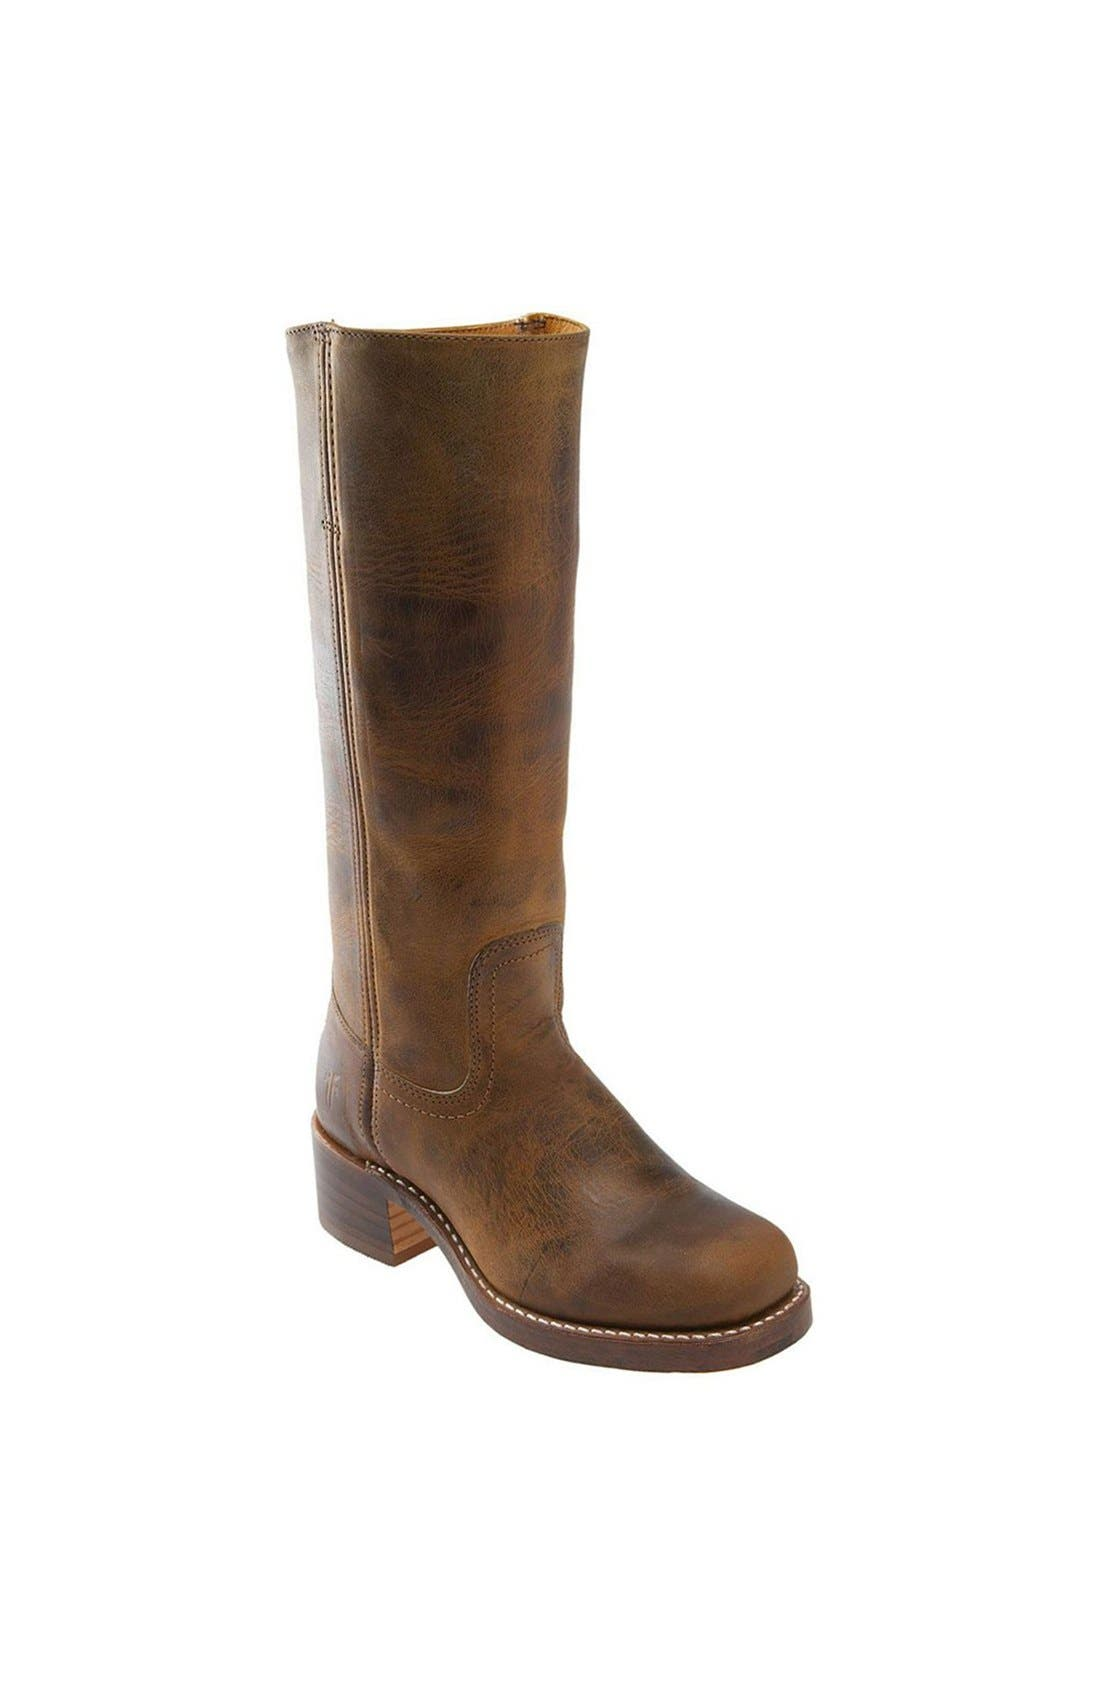 Alternate Image 1 Selected - Frye 'Campus 14L' Boot (Limited Edition)